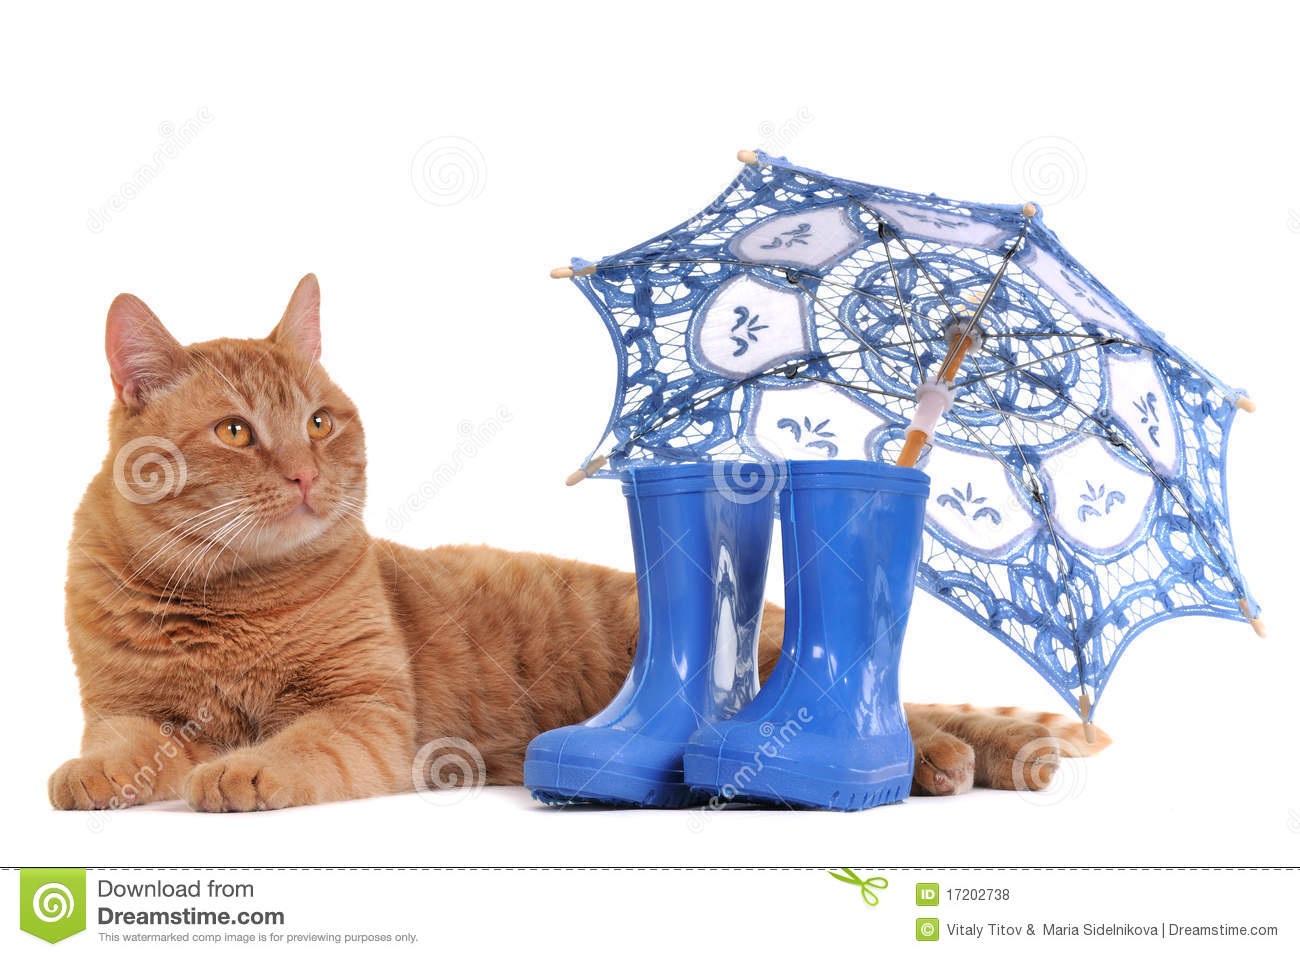 Cat with Boots and Umbrella